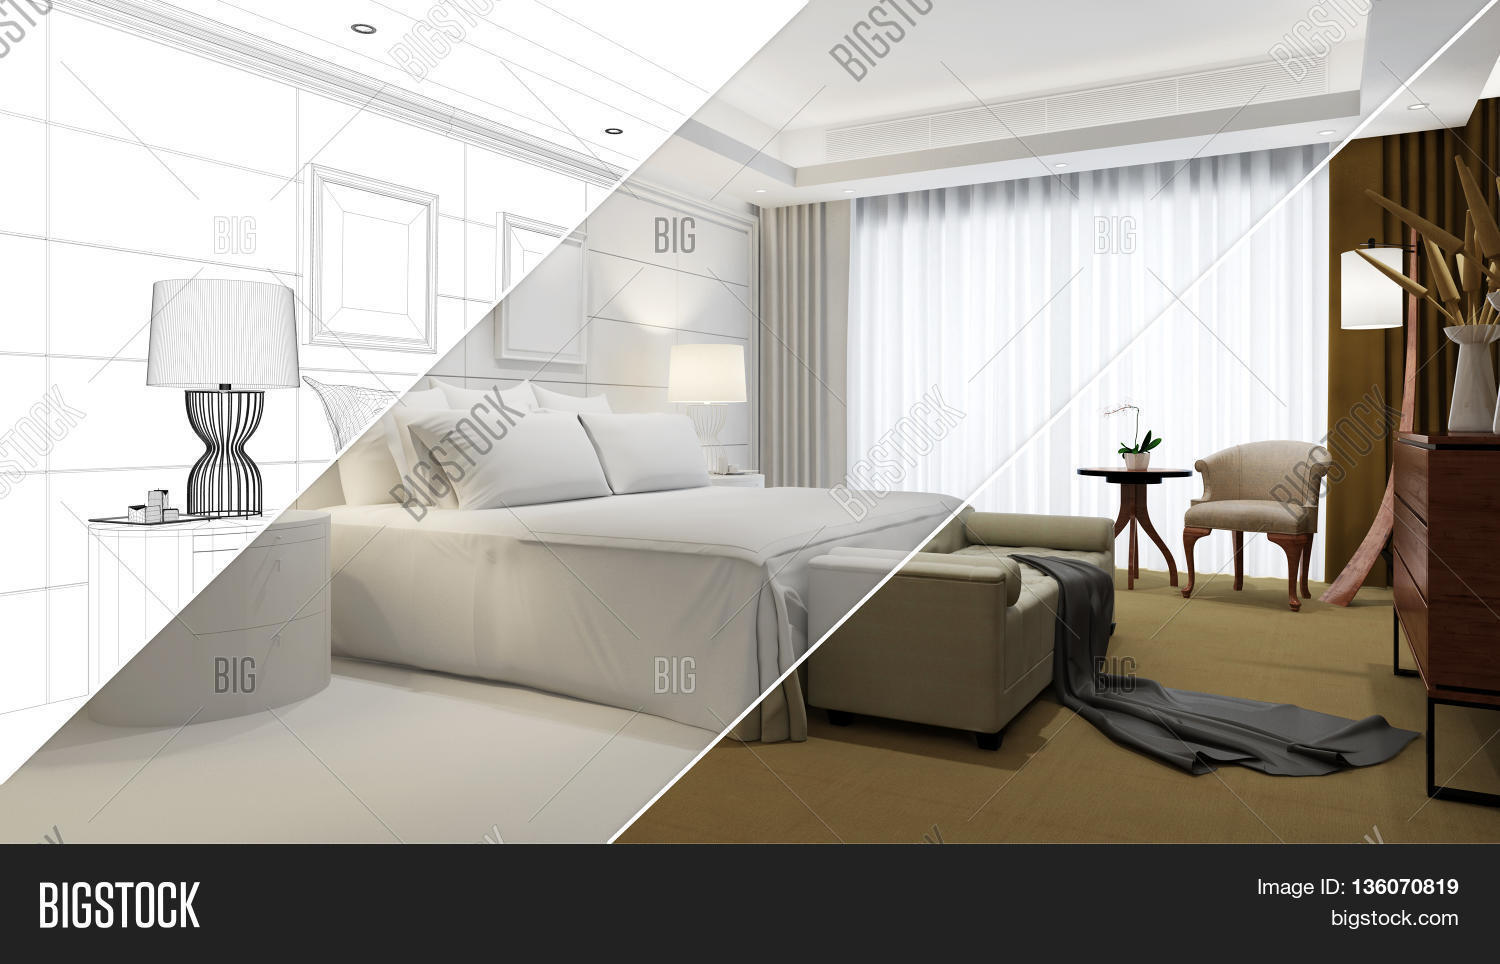 Planning development image photo free trial bigstock planning and development of hotel room from cad blueprint to 3d rendering malvernweather Choice Image